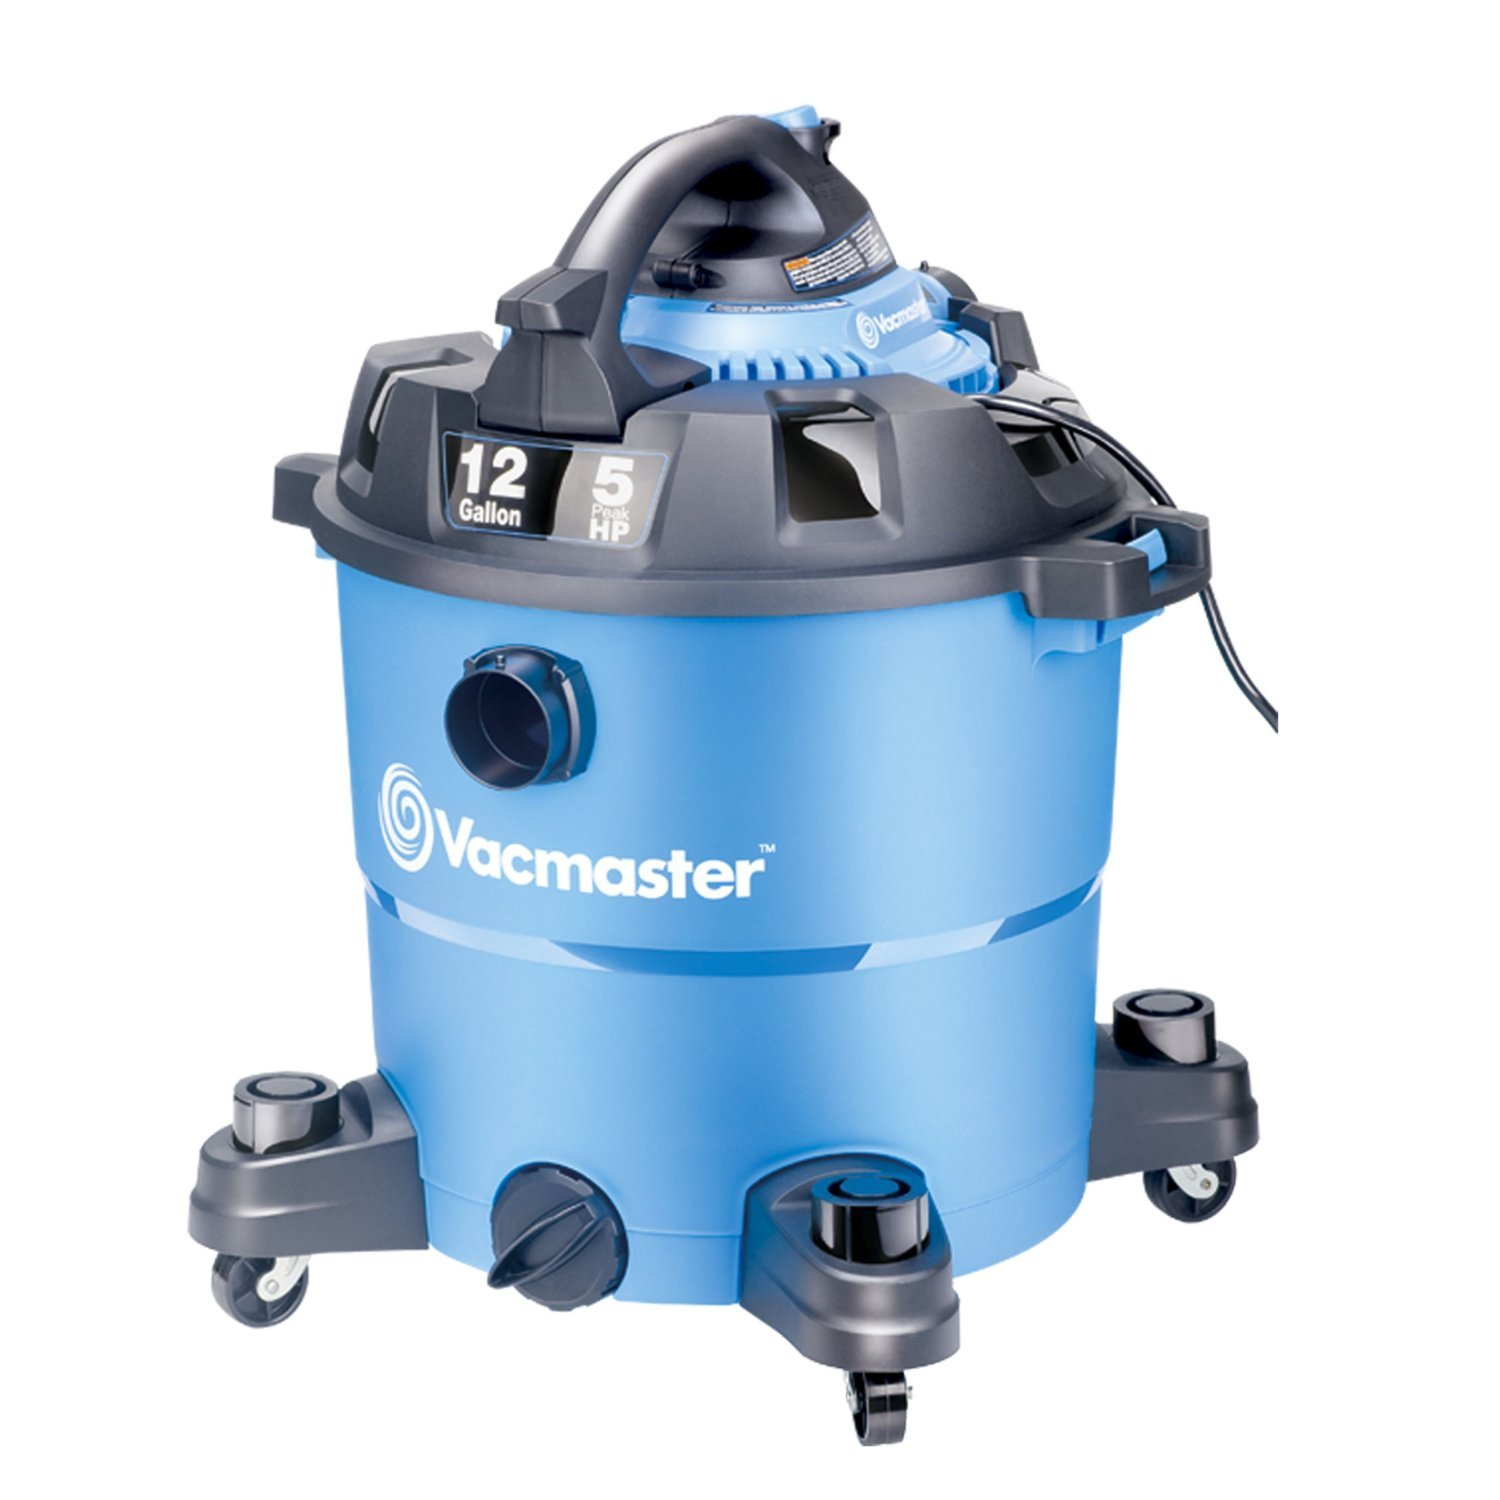 Vacmaster 12 Gallon, 5 Peak HP, Wet/Dry Vacuum with Detachable Blower, VBV1210 (Pack of 4)